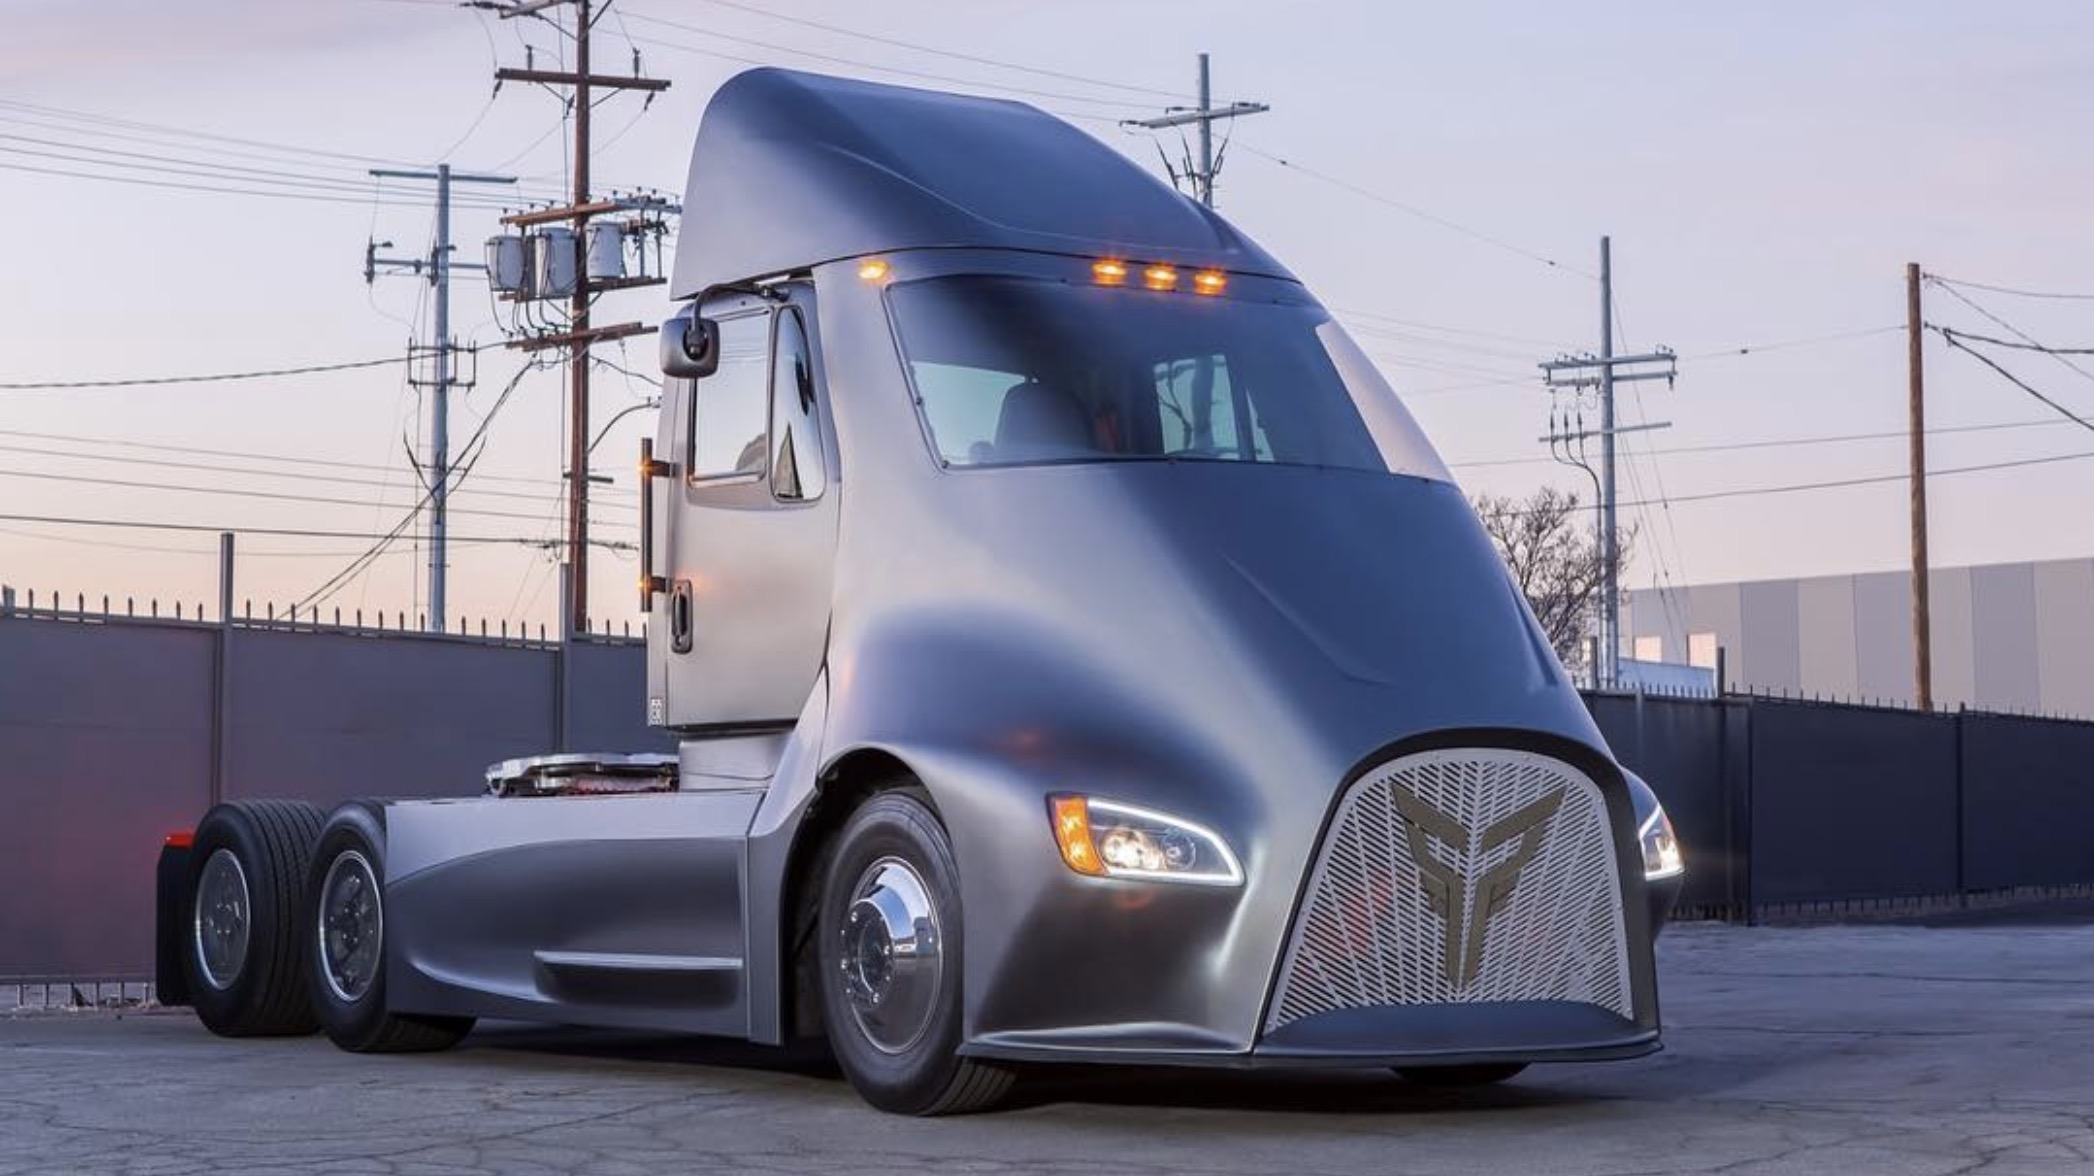 Thor unveils electric semi prototype, tries to beat Tesla to market and convert other trucks to electric propulsion